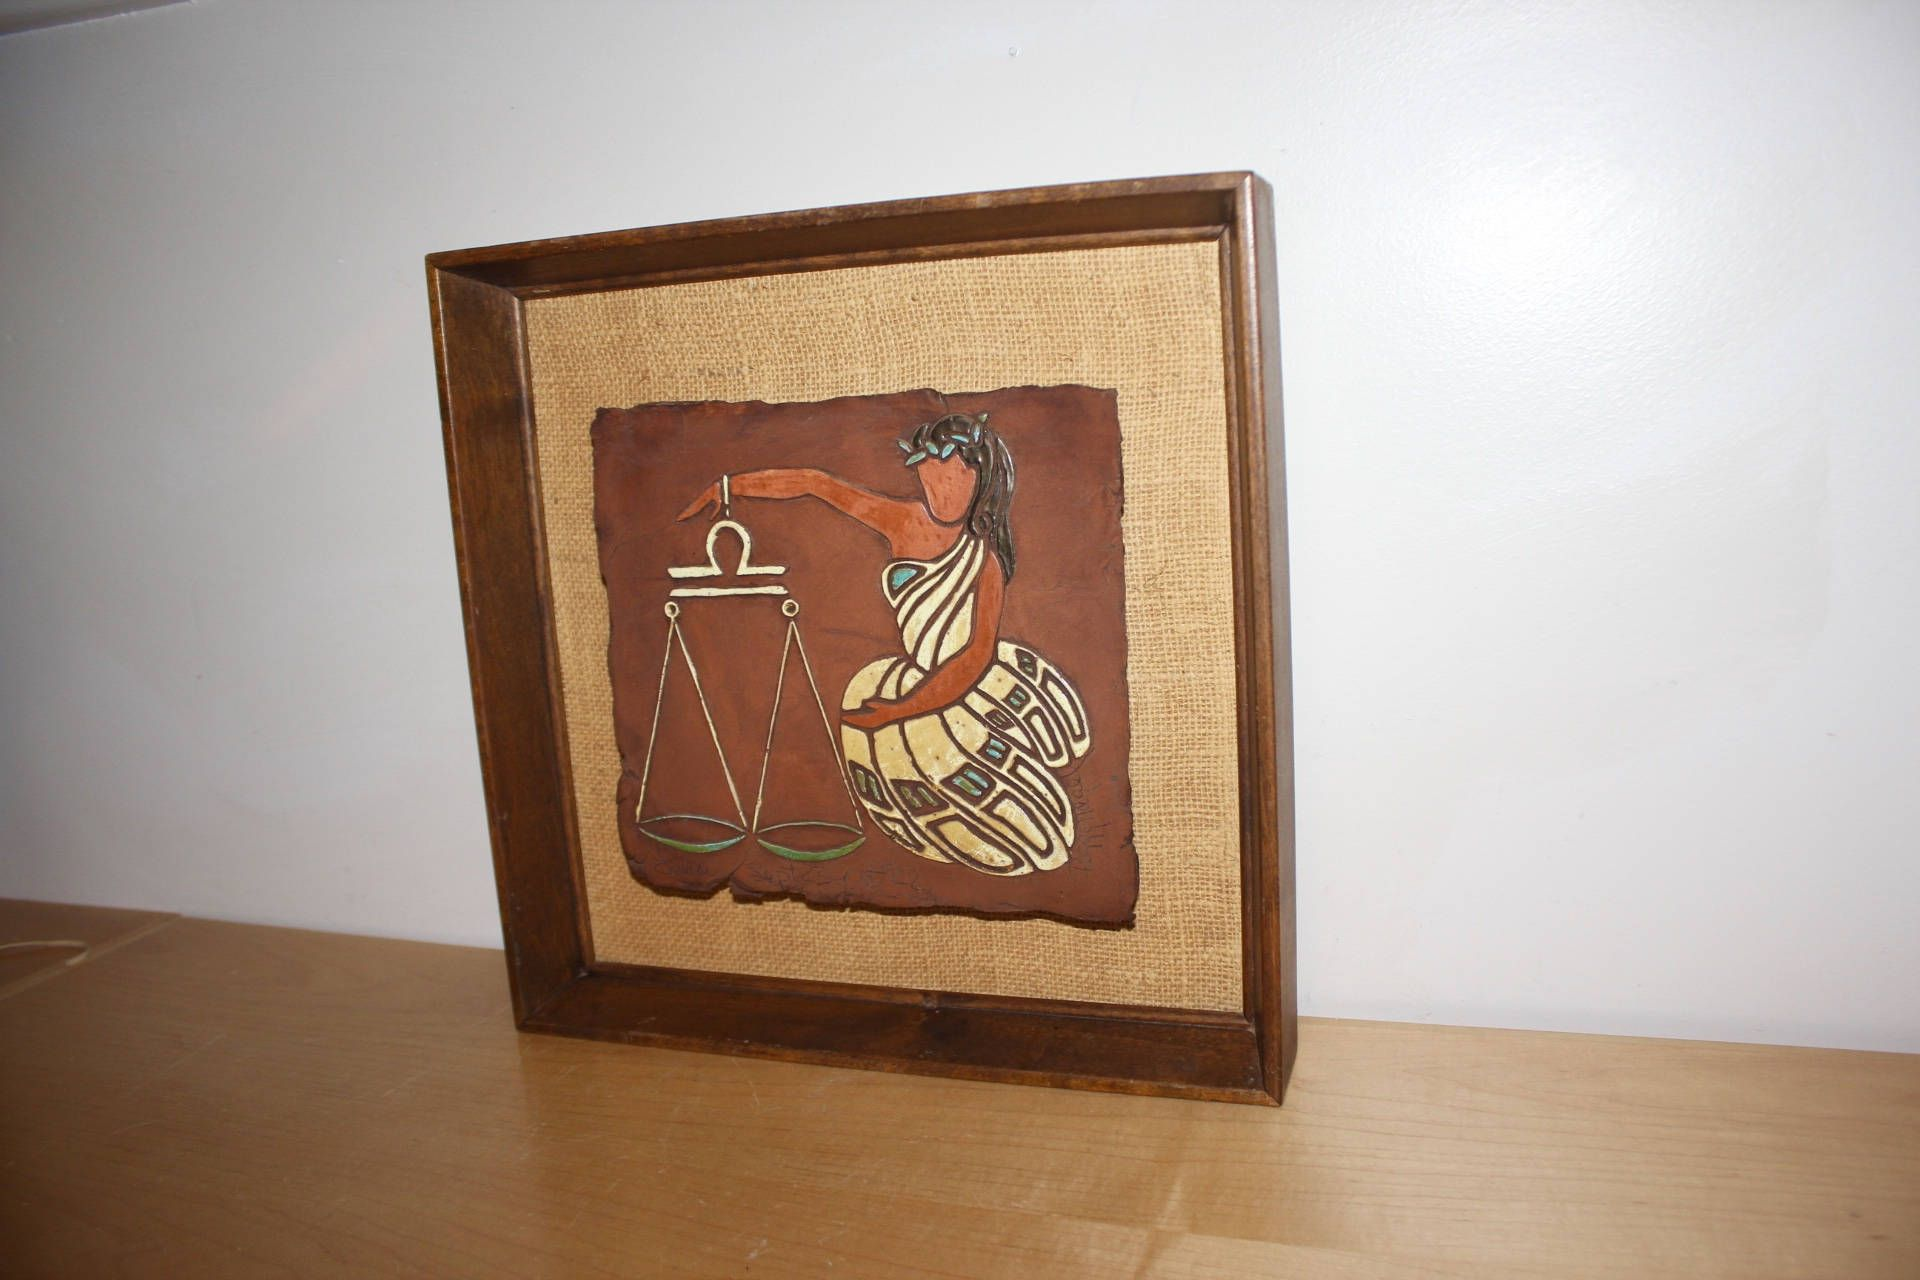 Peggy nagel libra astrological sign wall hanging picture art tile